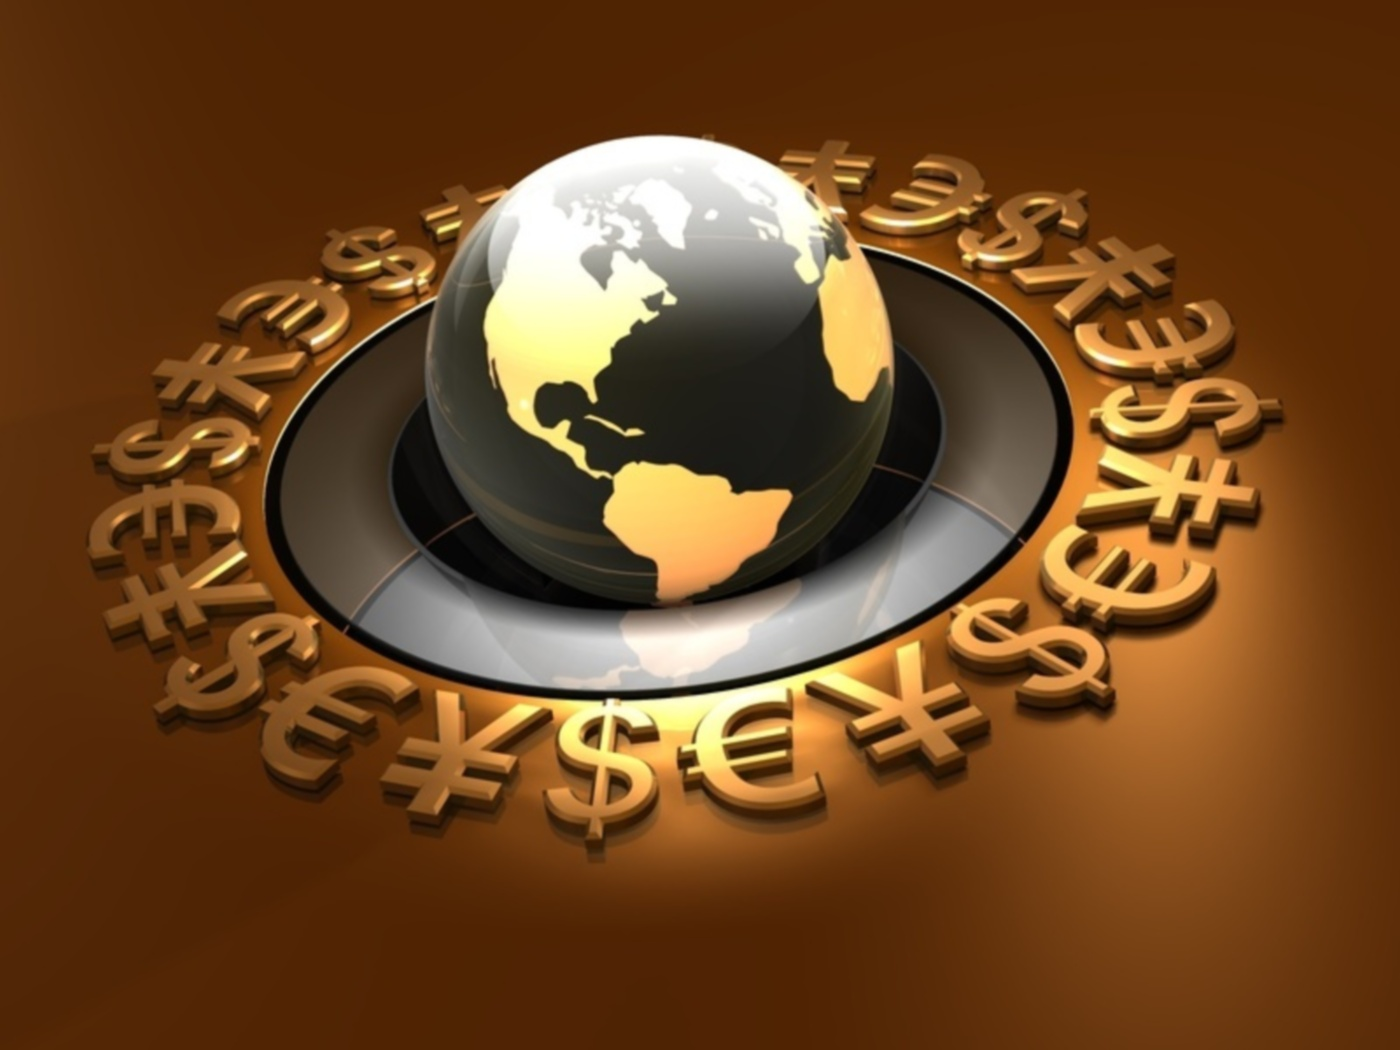 3d illustration of a globe surrounded by a ring of bronze Yen, Euro, and Dollar symbols